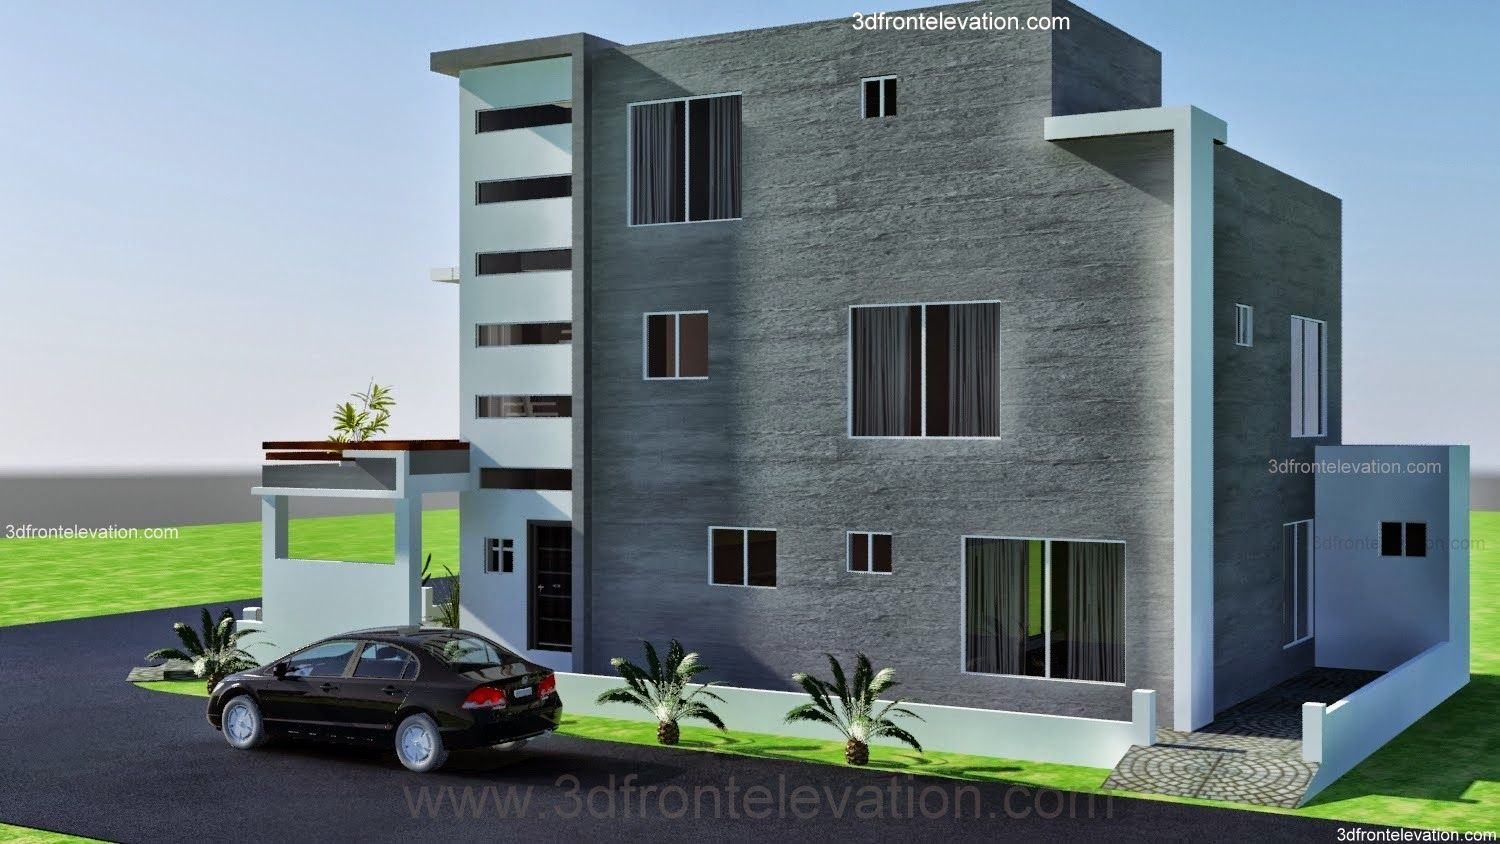 10 Marla ,modern Architecture House Plan Corner Plot  DESIGN IN LAHORE   PAKISTAN